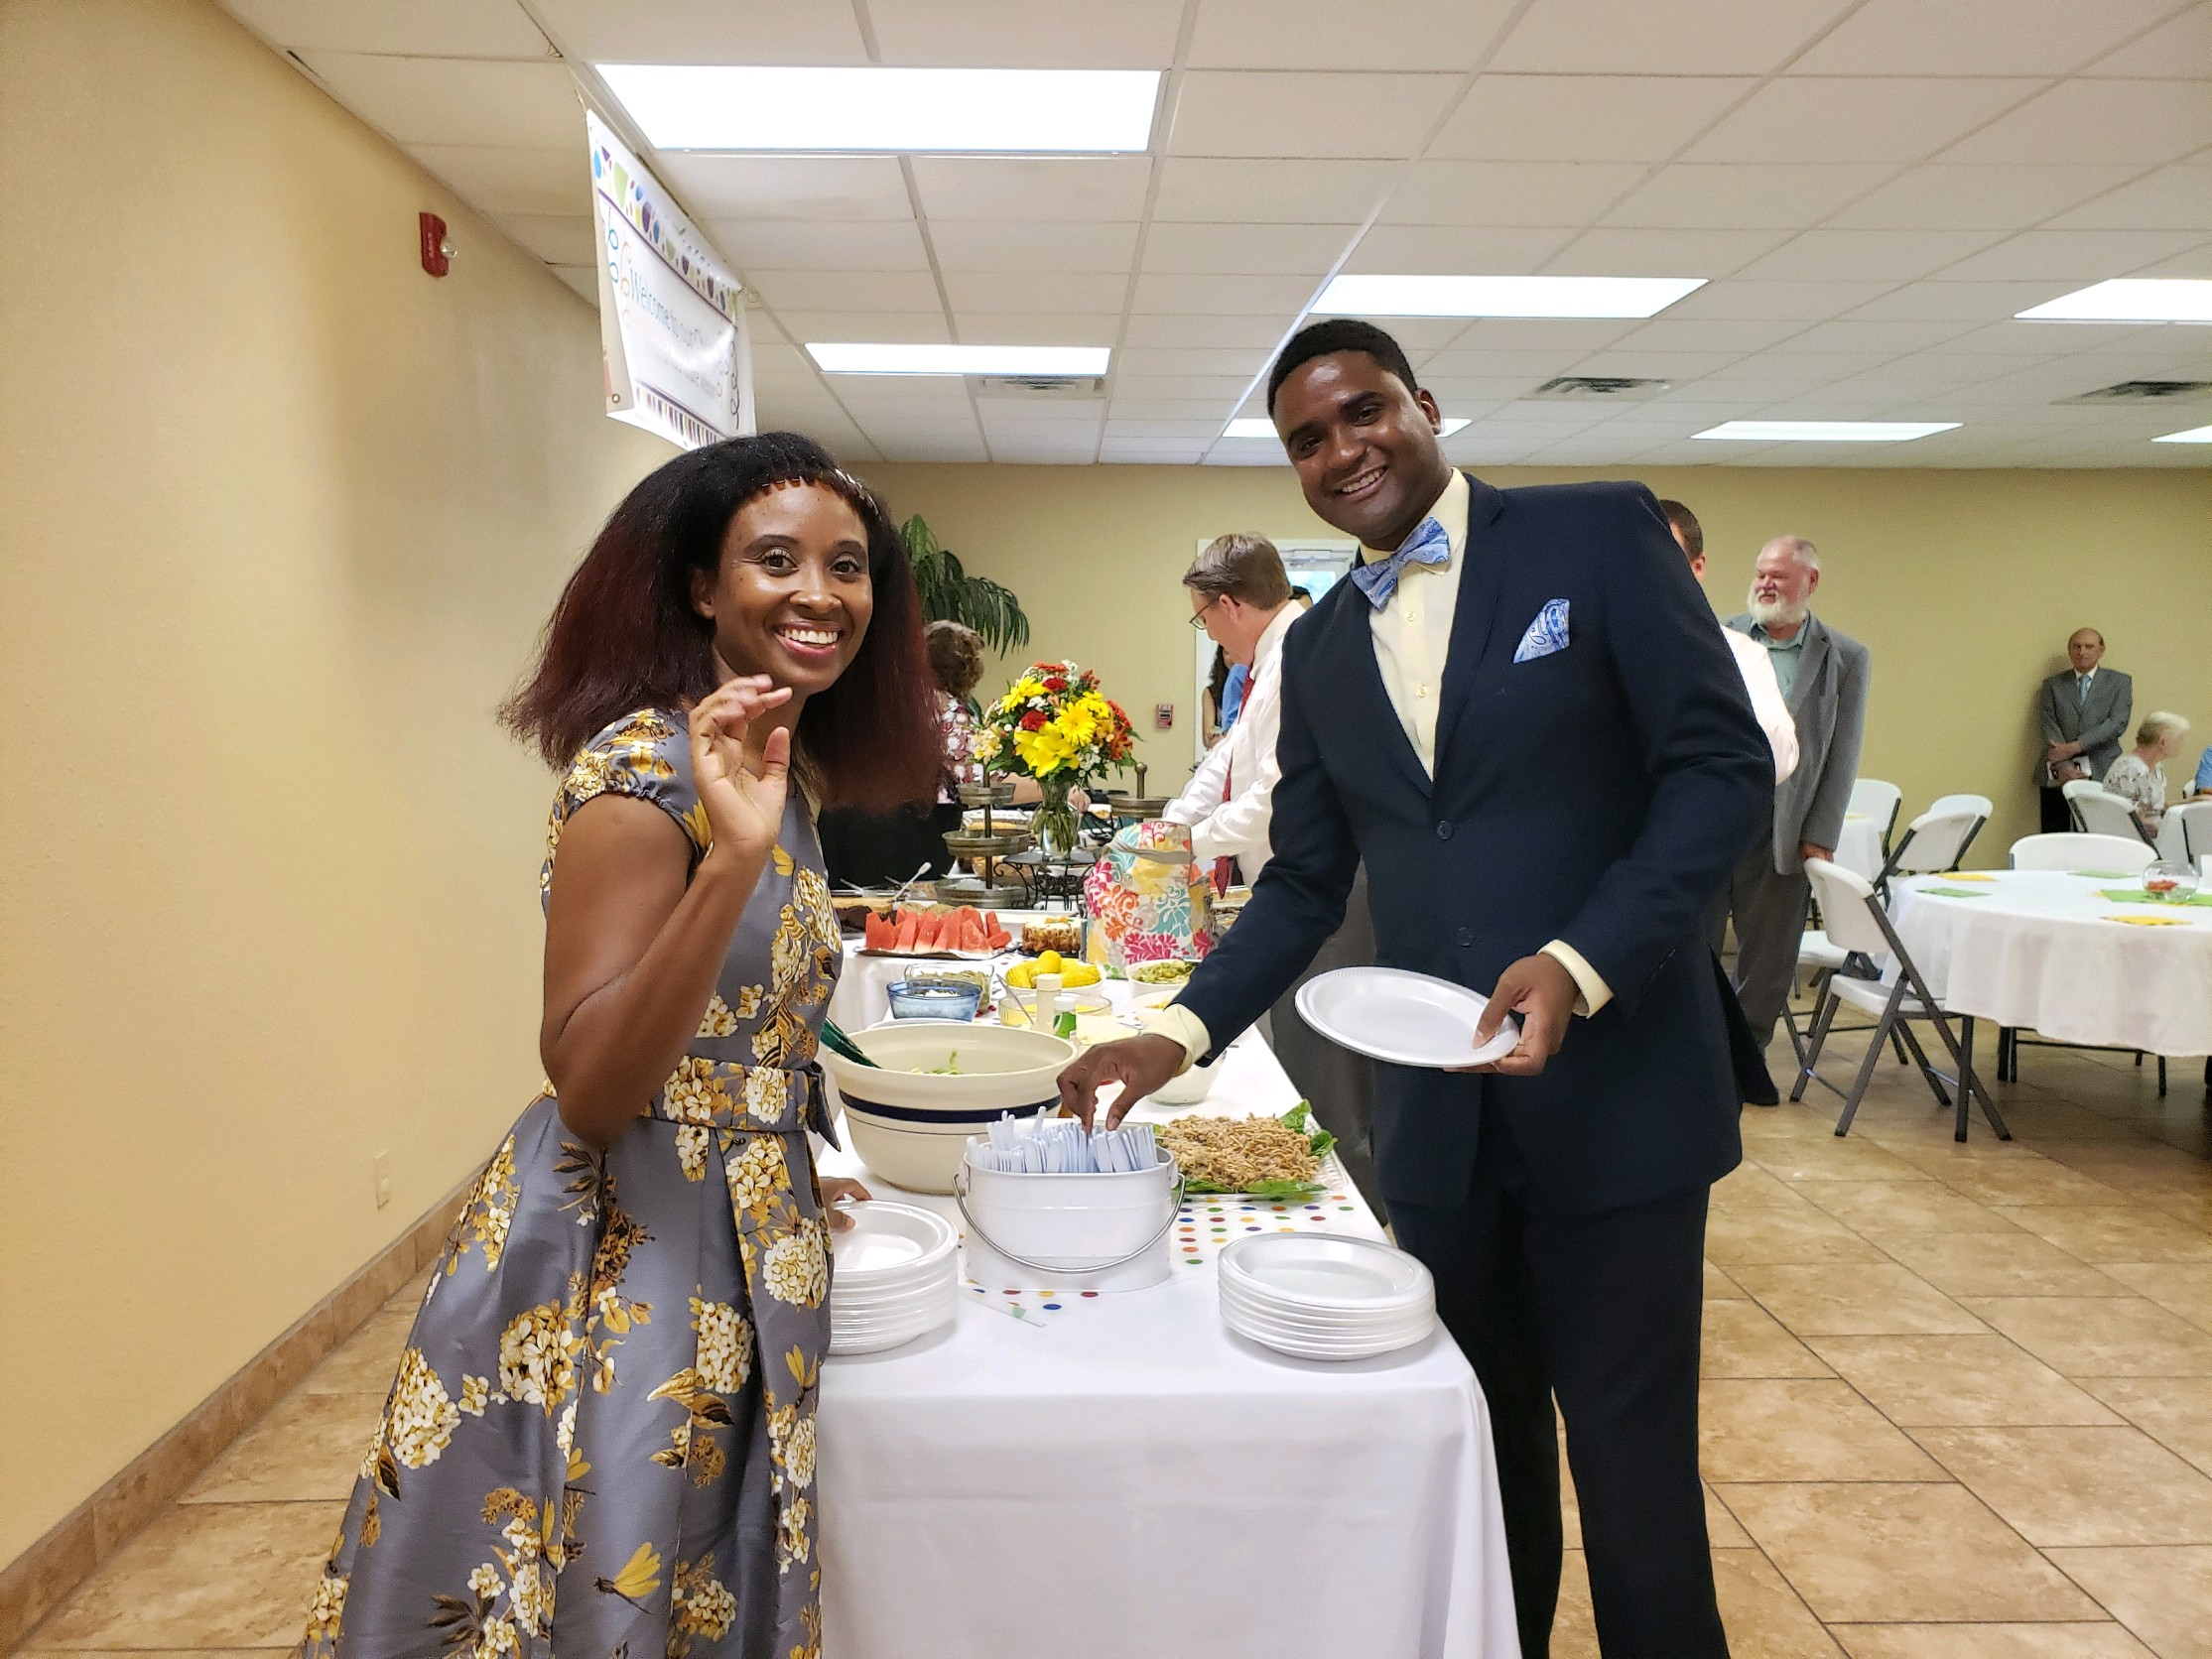 Nicole (left), and Andre Weston partake in the fellowship meal following their installtaion service at Bass Memorial Academy Church in Lumberton, Miss.